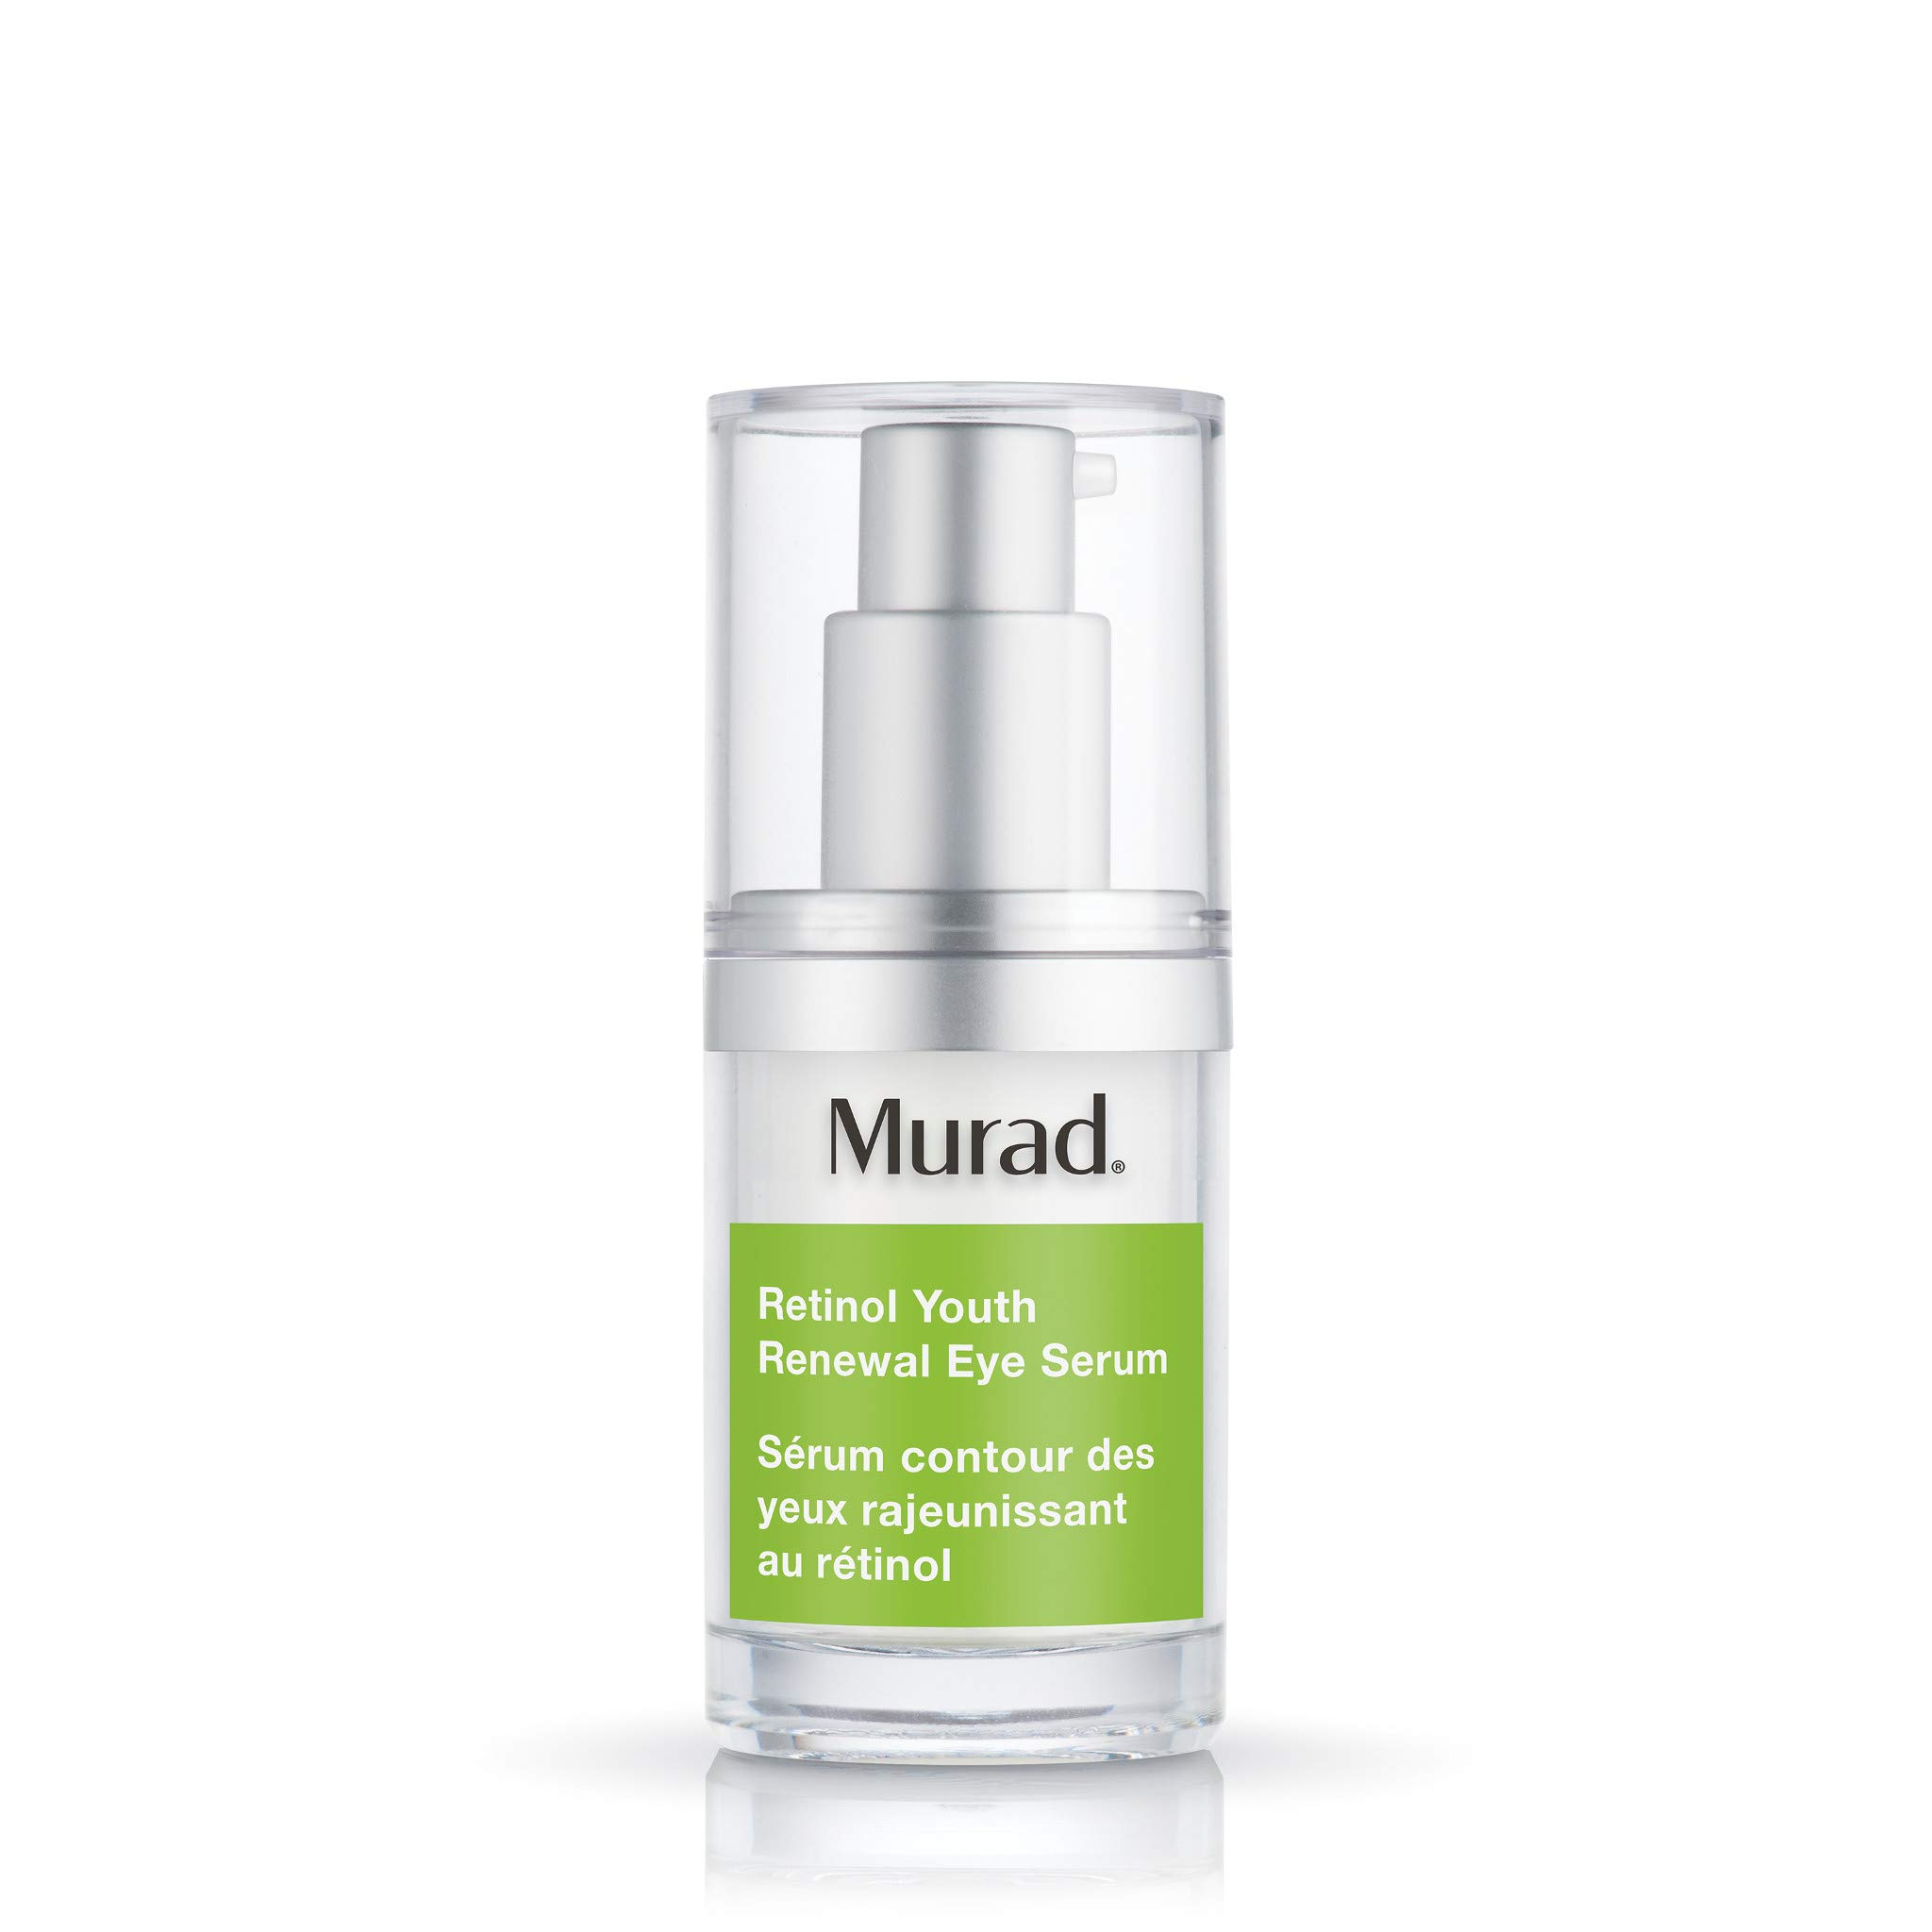 Murad Retinol Youth Renewal Eye Serum by Murad